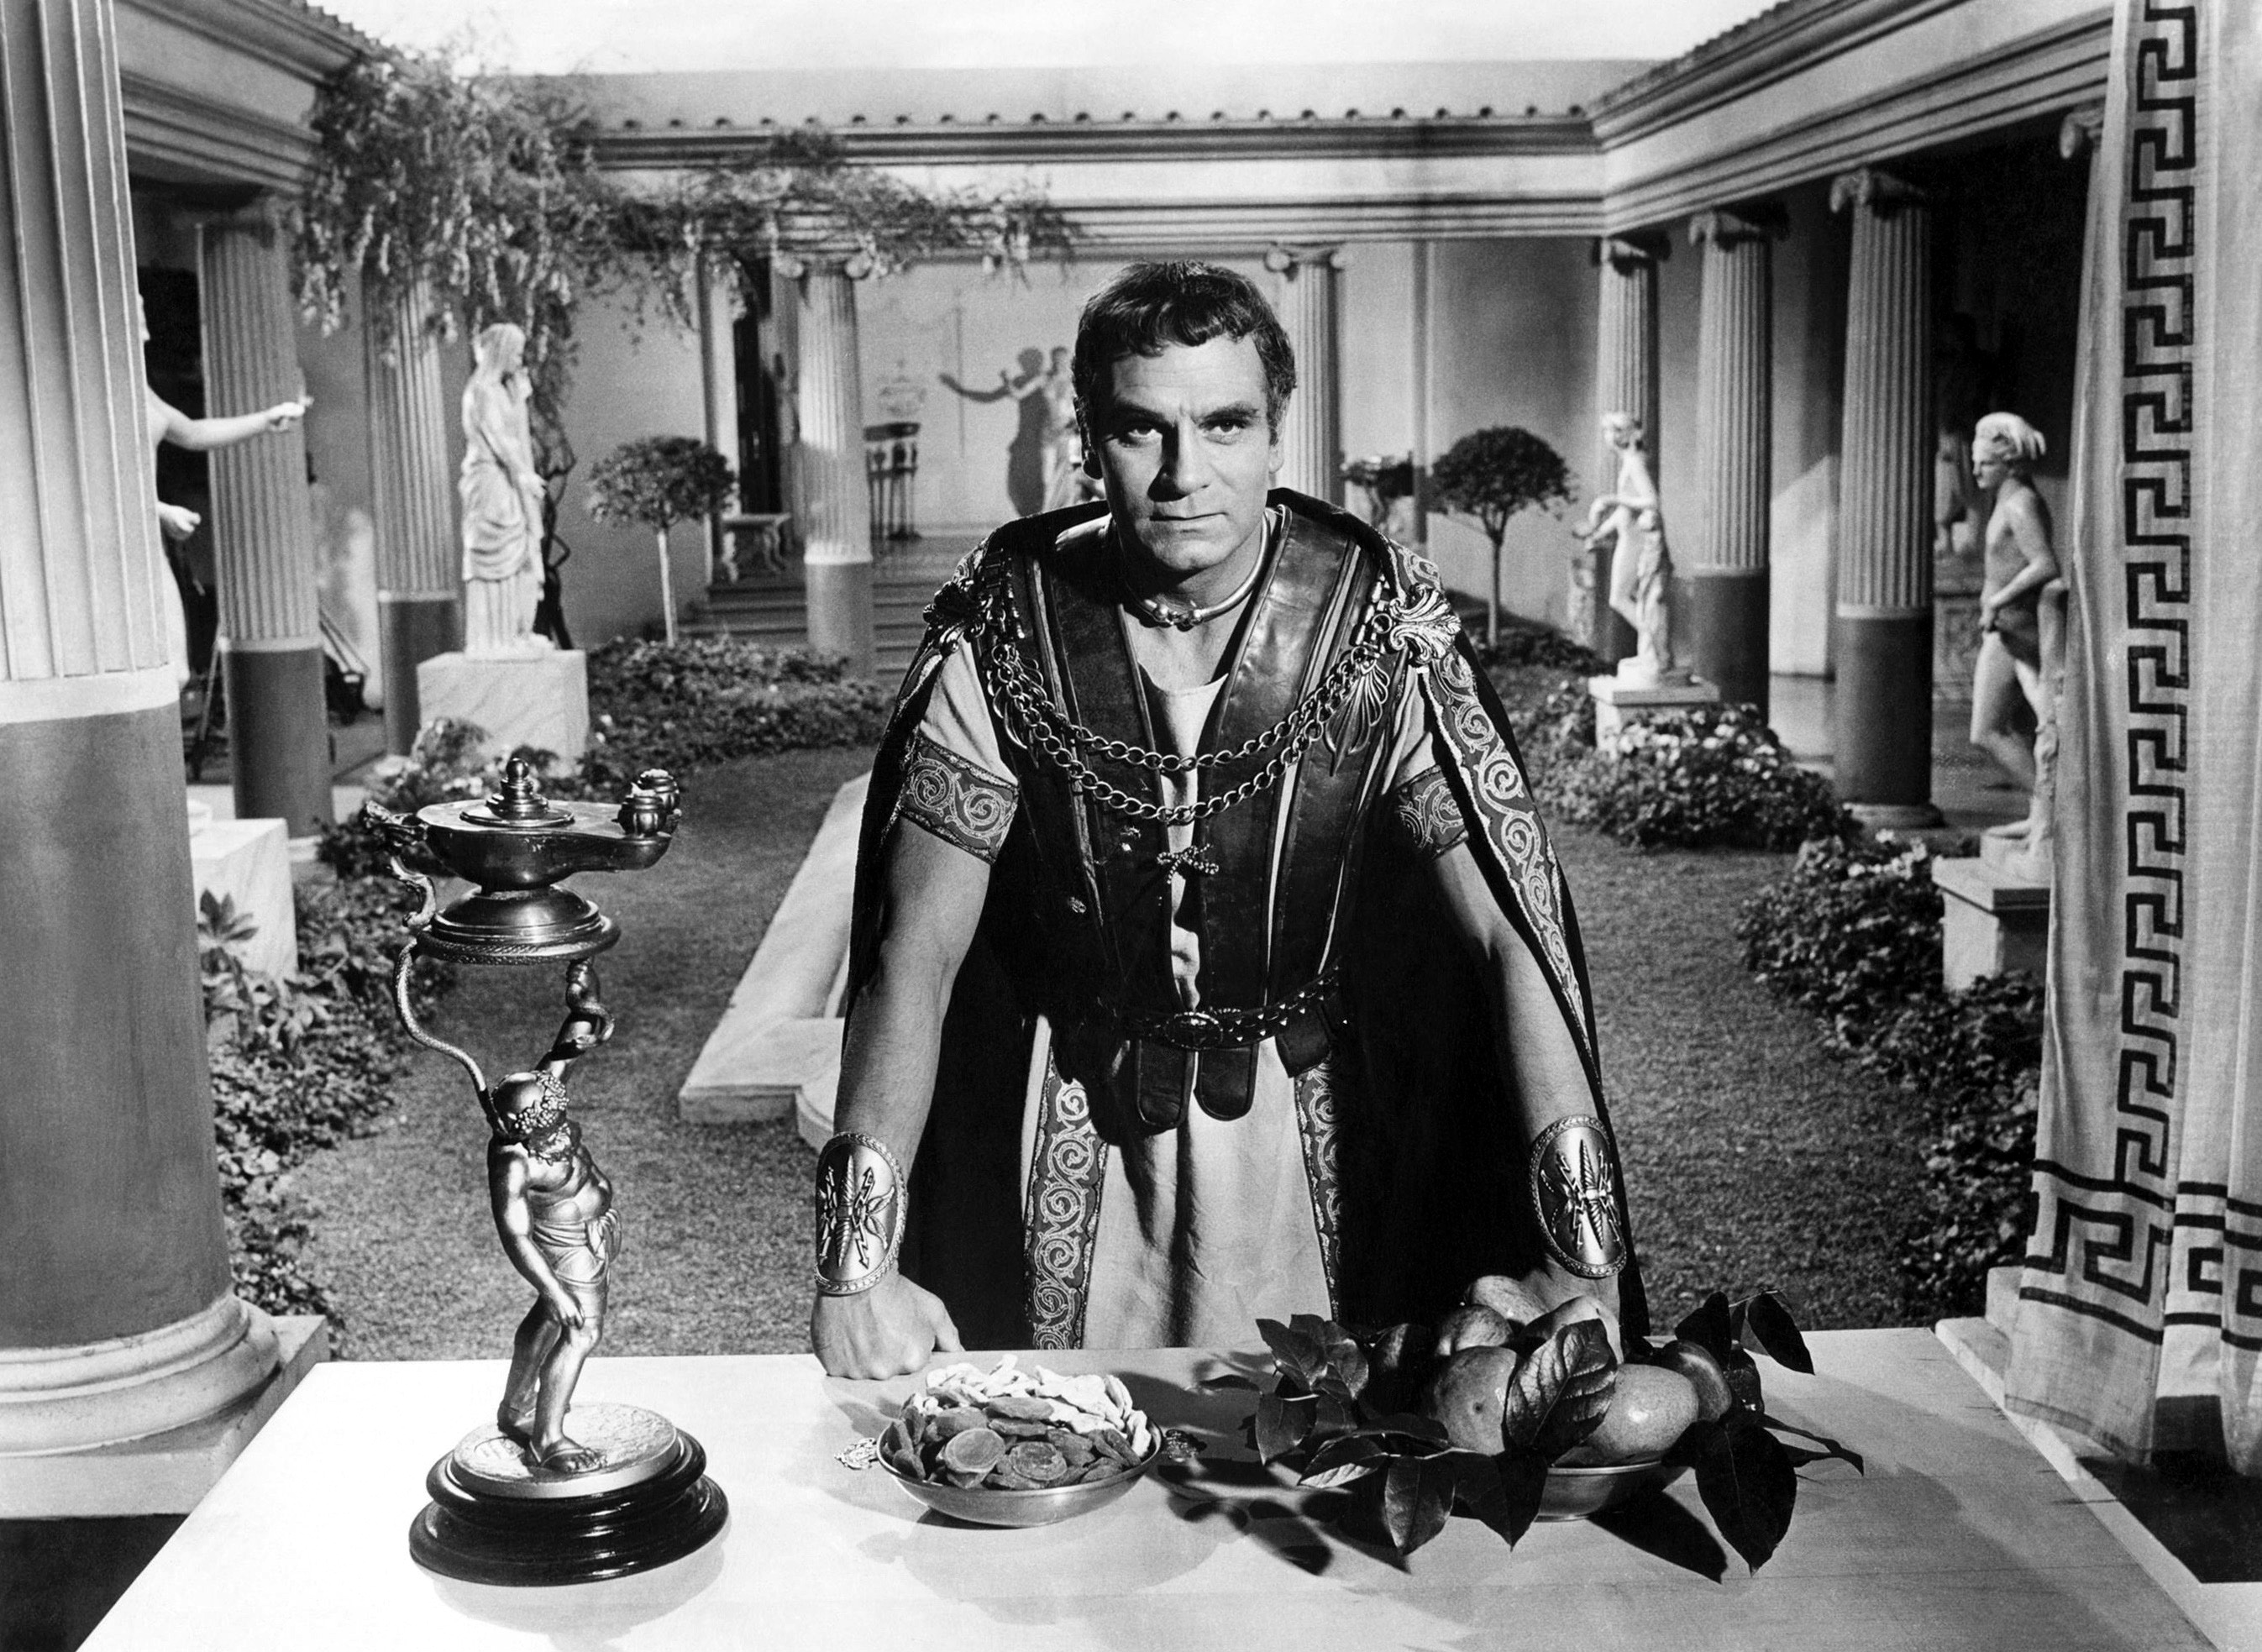 Laurence olivier spartacus quotes - Laurence Olivier Spartacus Quotes 6